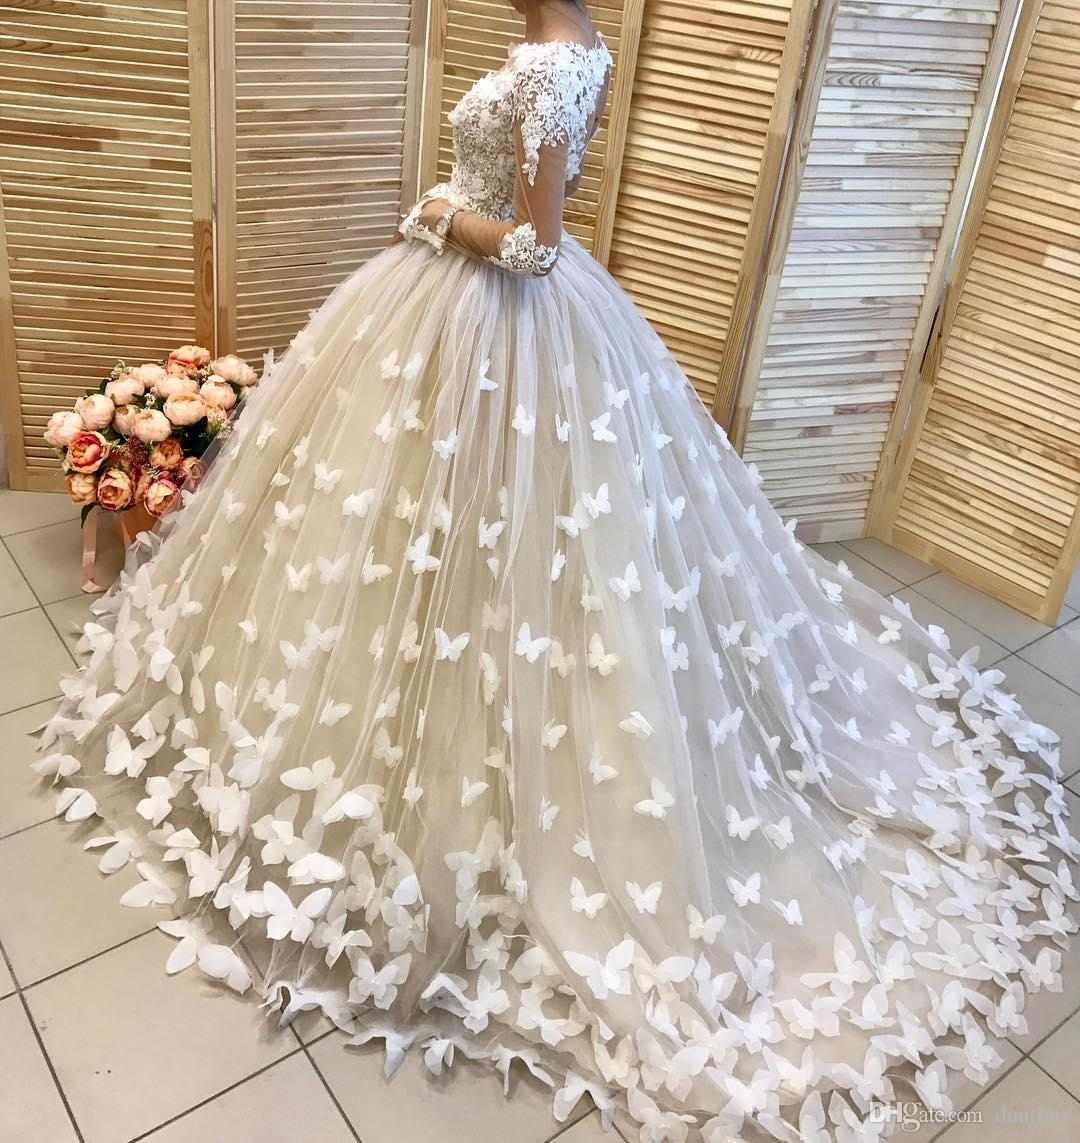 Butterfly Wedding Gown: Amazing Butterfly Ball Gown Long Sleeves Wedding Dress